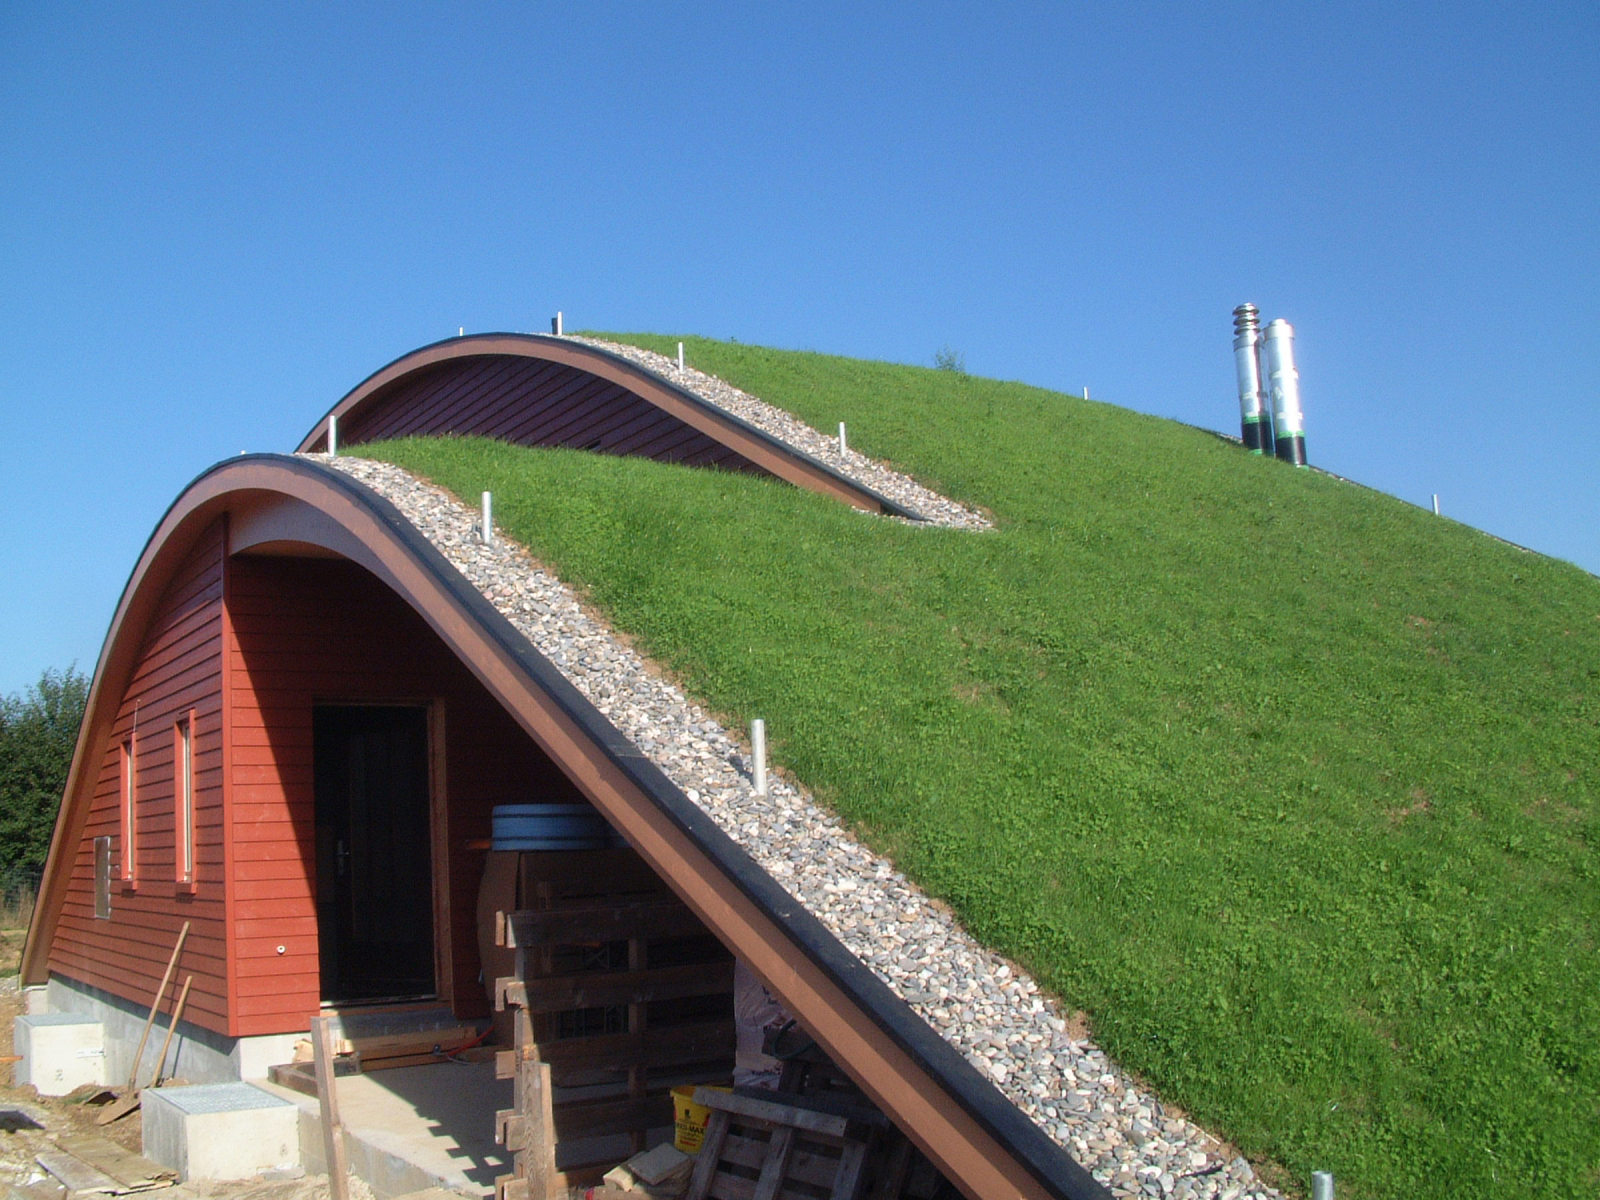 Steep Sloped Green Roofs Zinco Canada